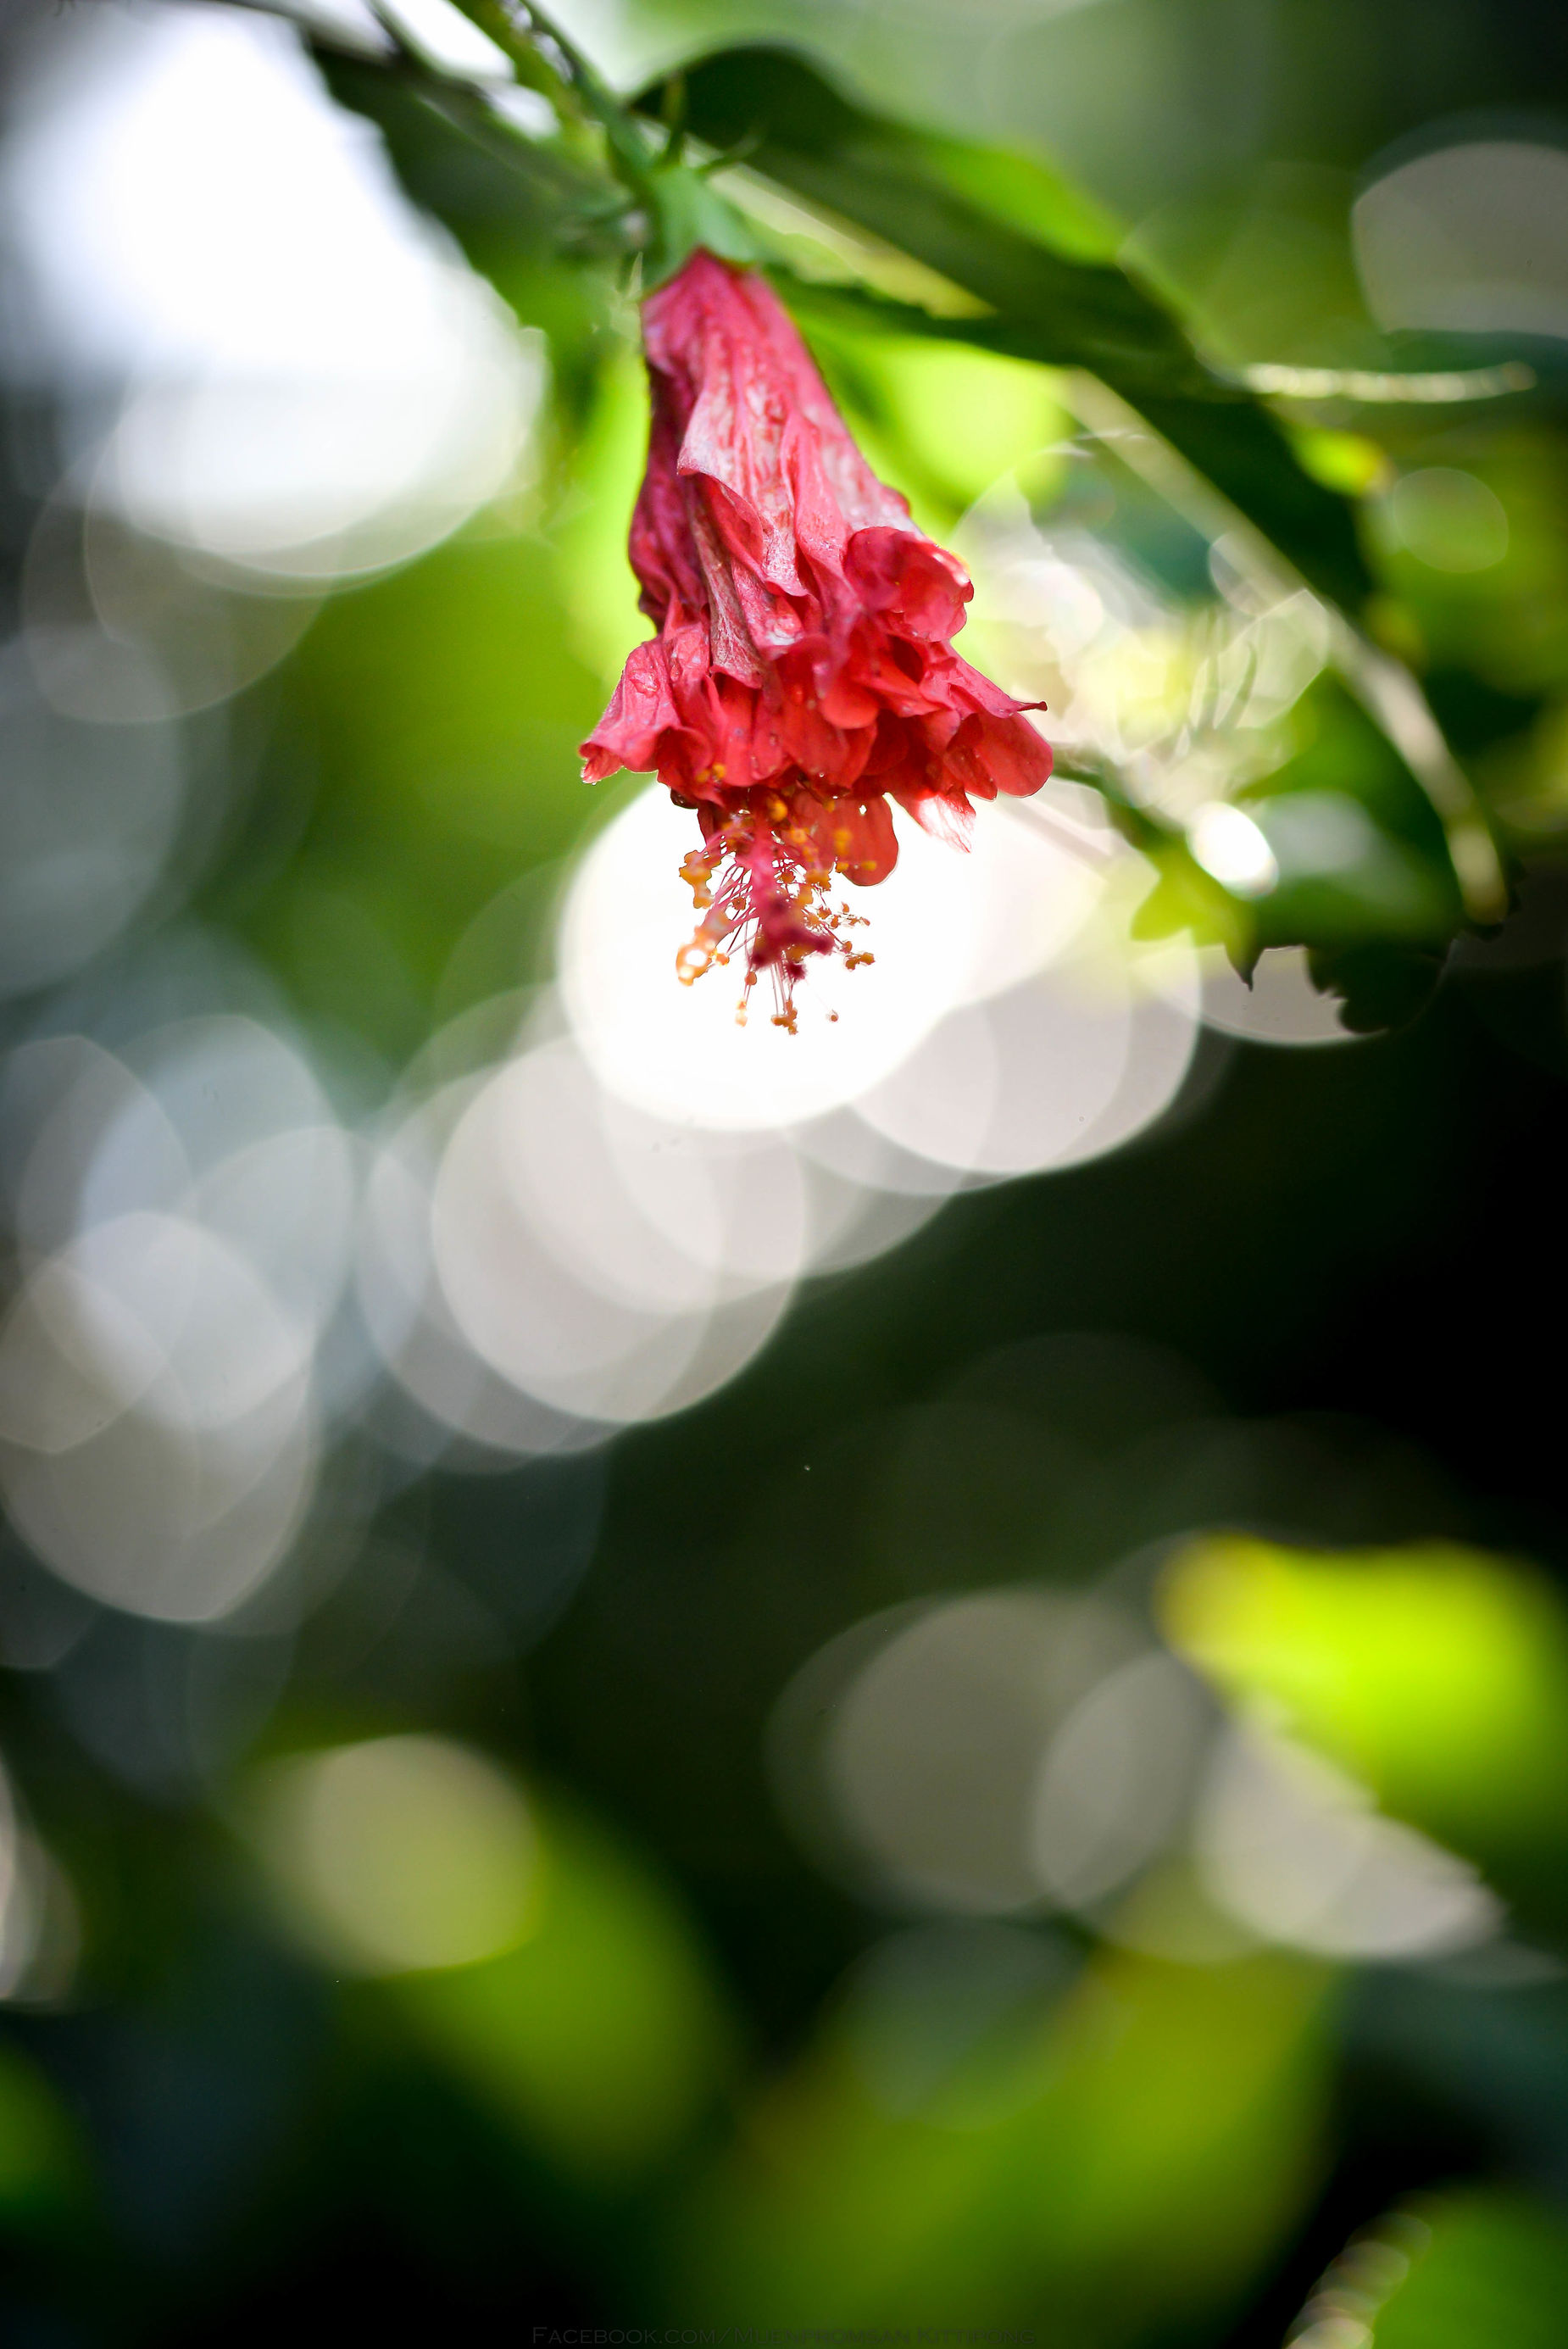 Flower in light Animal Themes Beauty In Nature Blossom Bogeh Close-up Day Flower Flower Head Fragility Freshness Growth Nature No People Outdoors Petal Pistil Plant